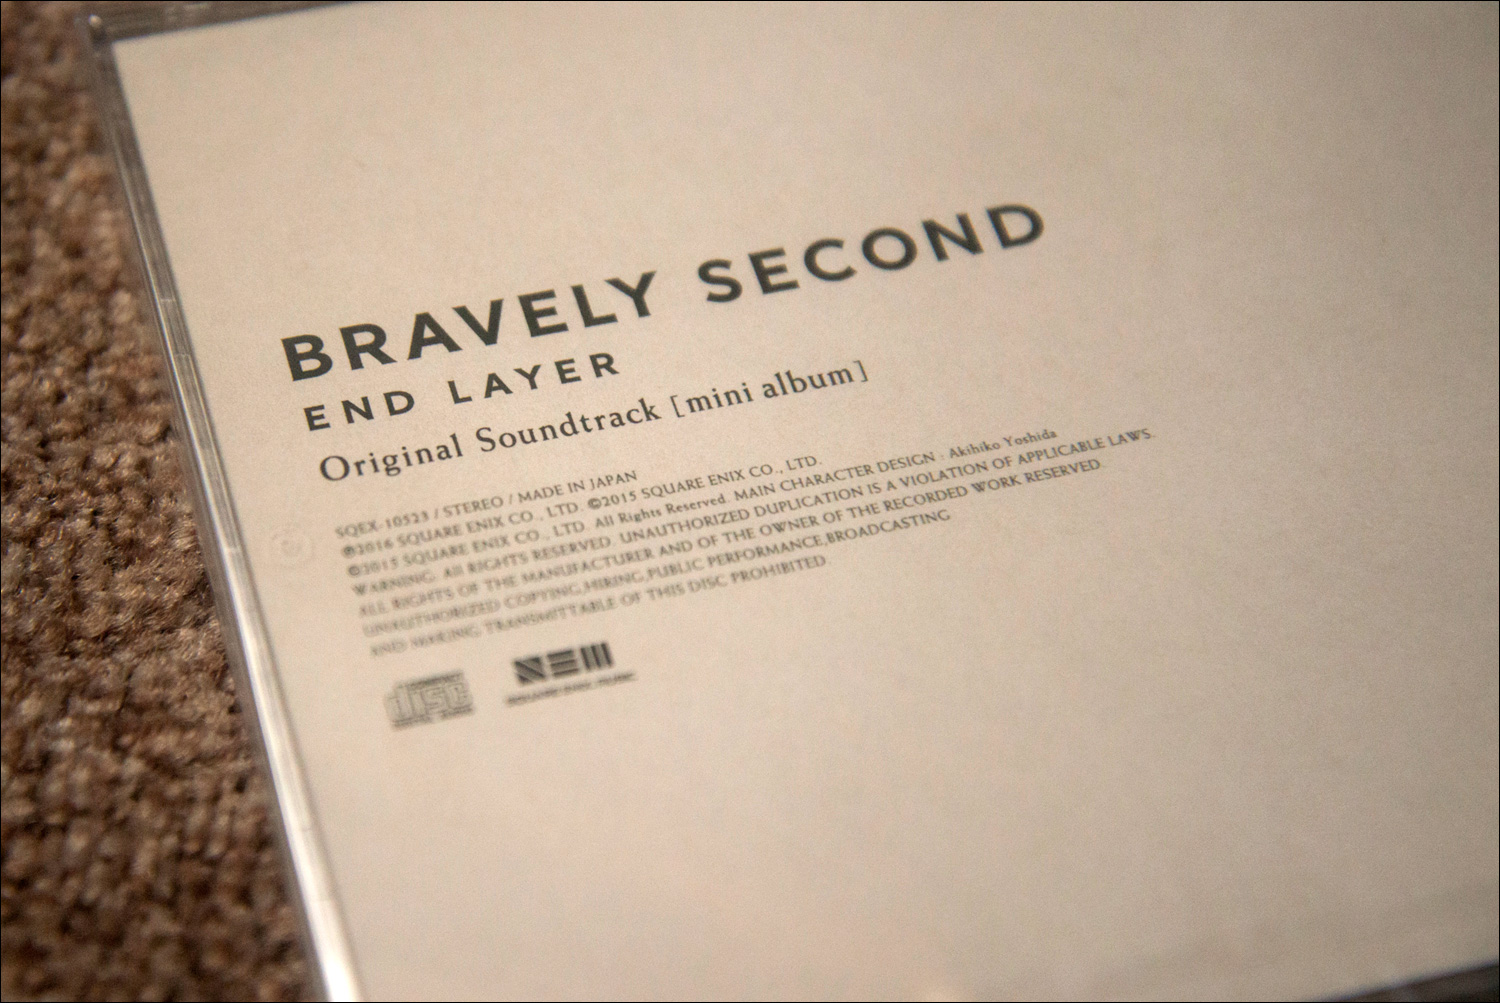 Bravely-Second-End-Layer-Deluxe-Collector's-Edition-Soundtrack-Back